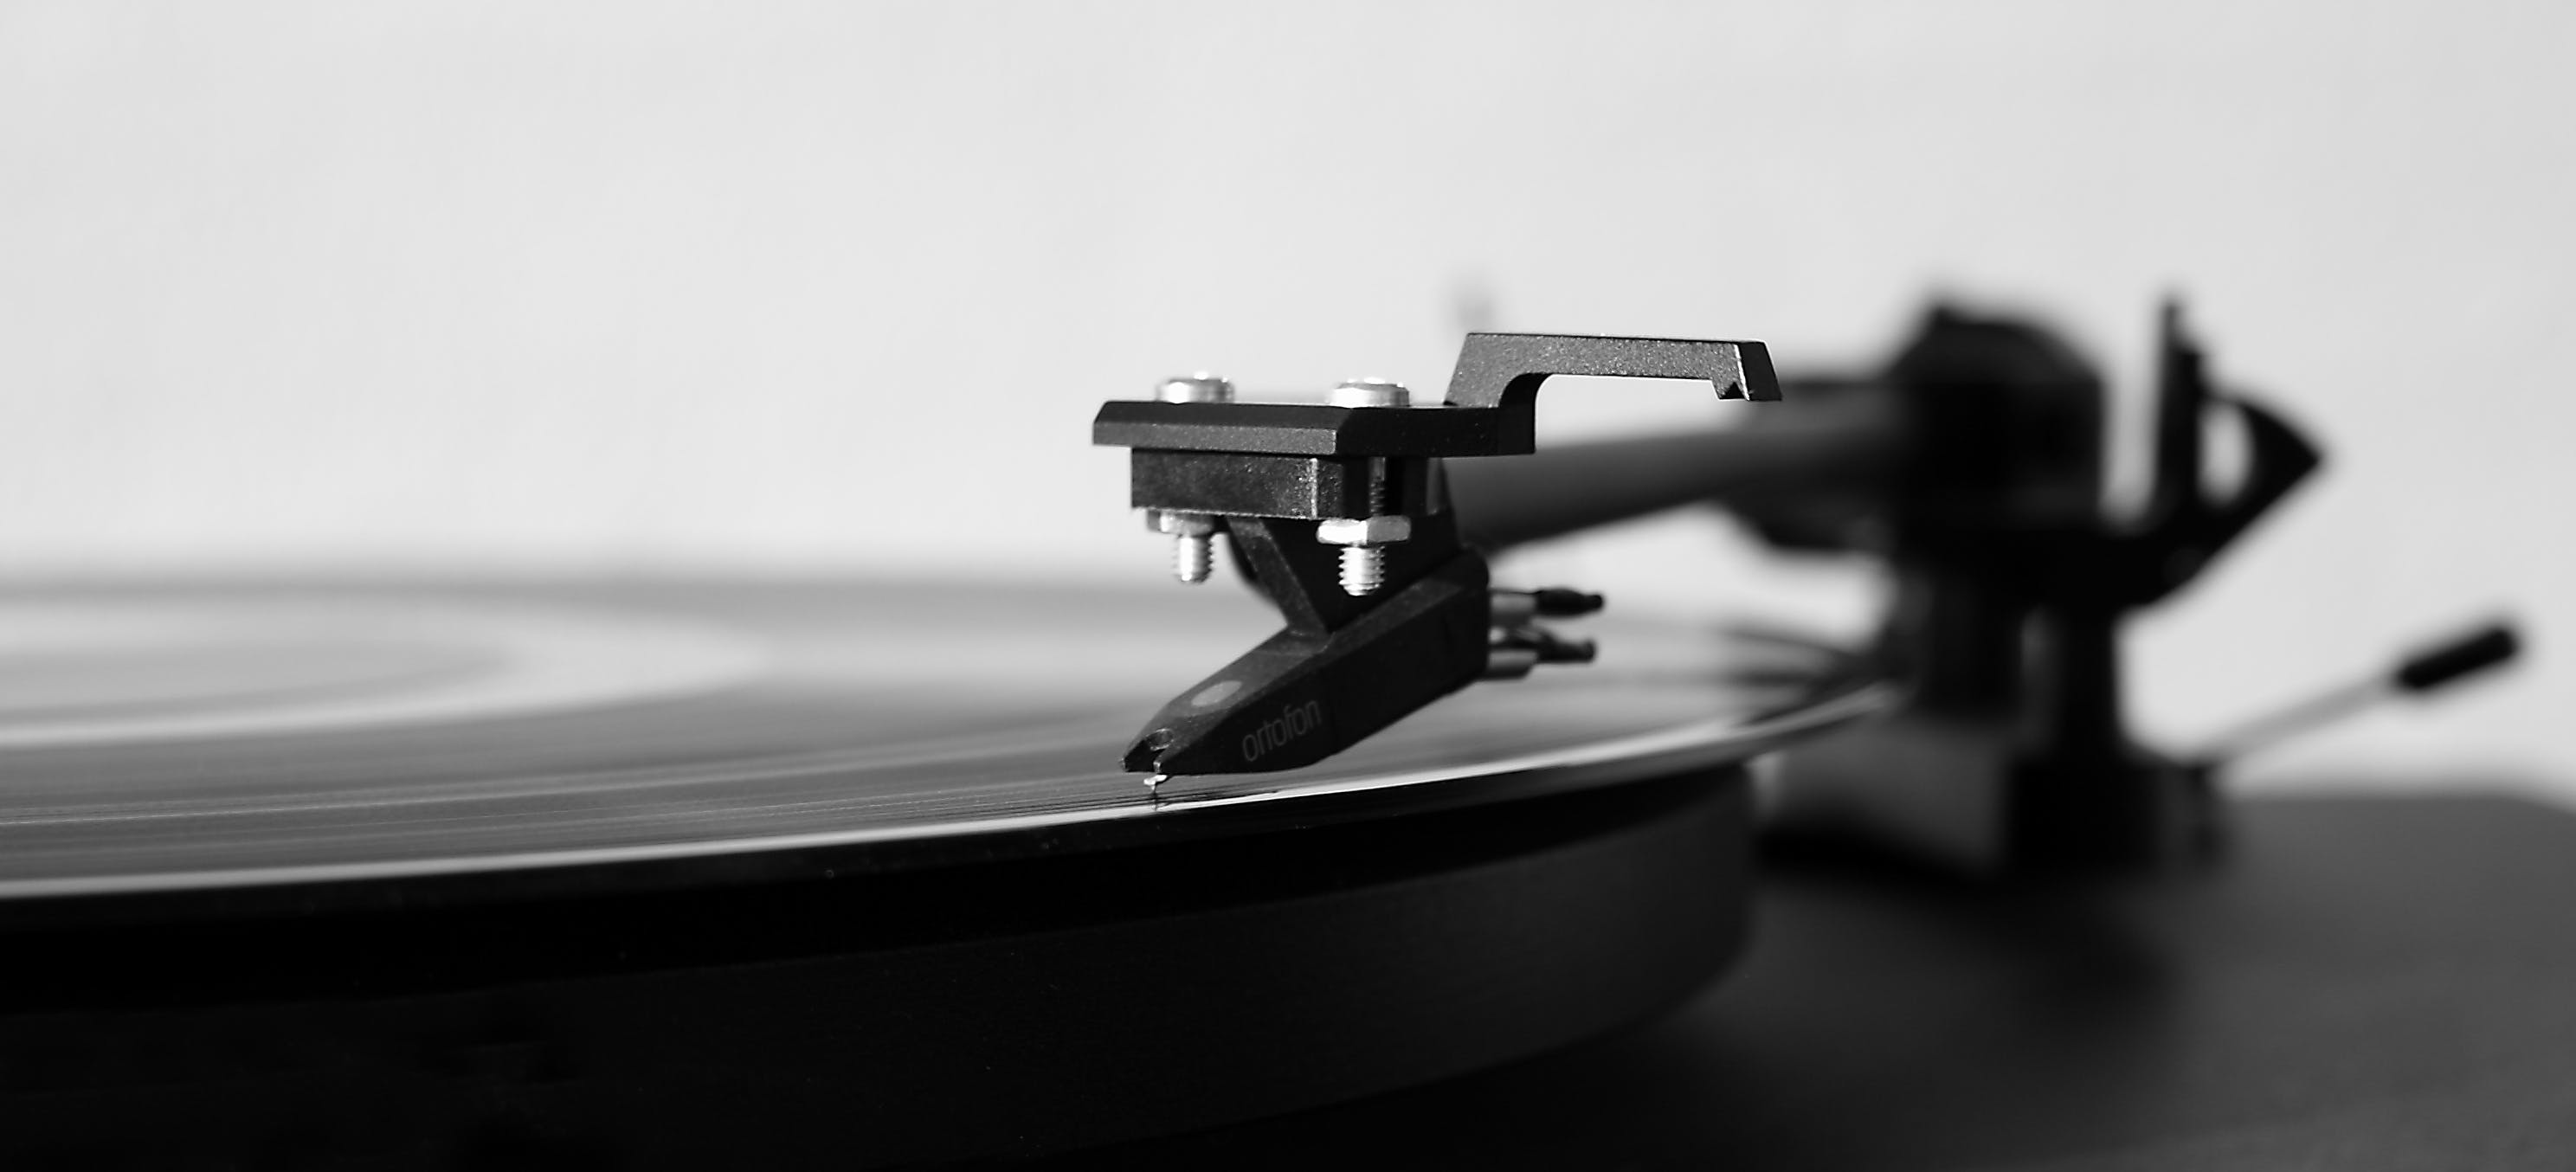 Gray Scale Photography of Turntable